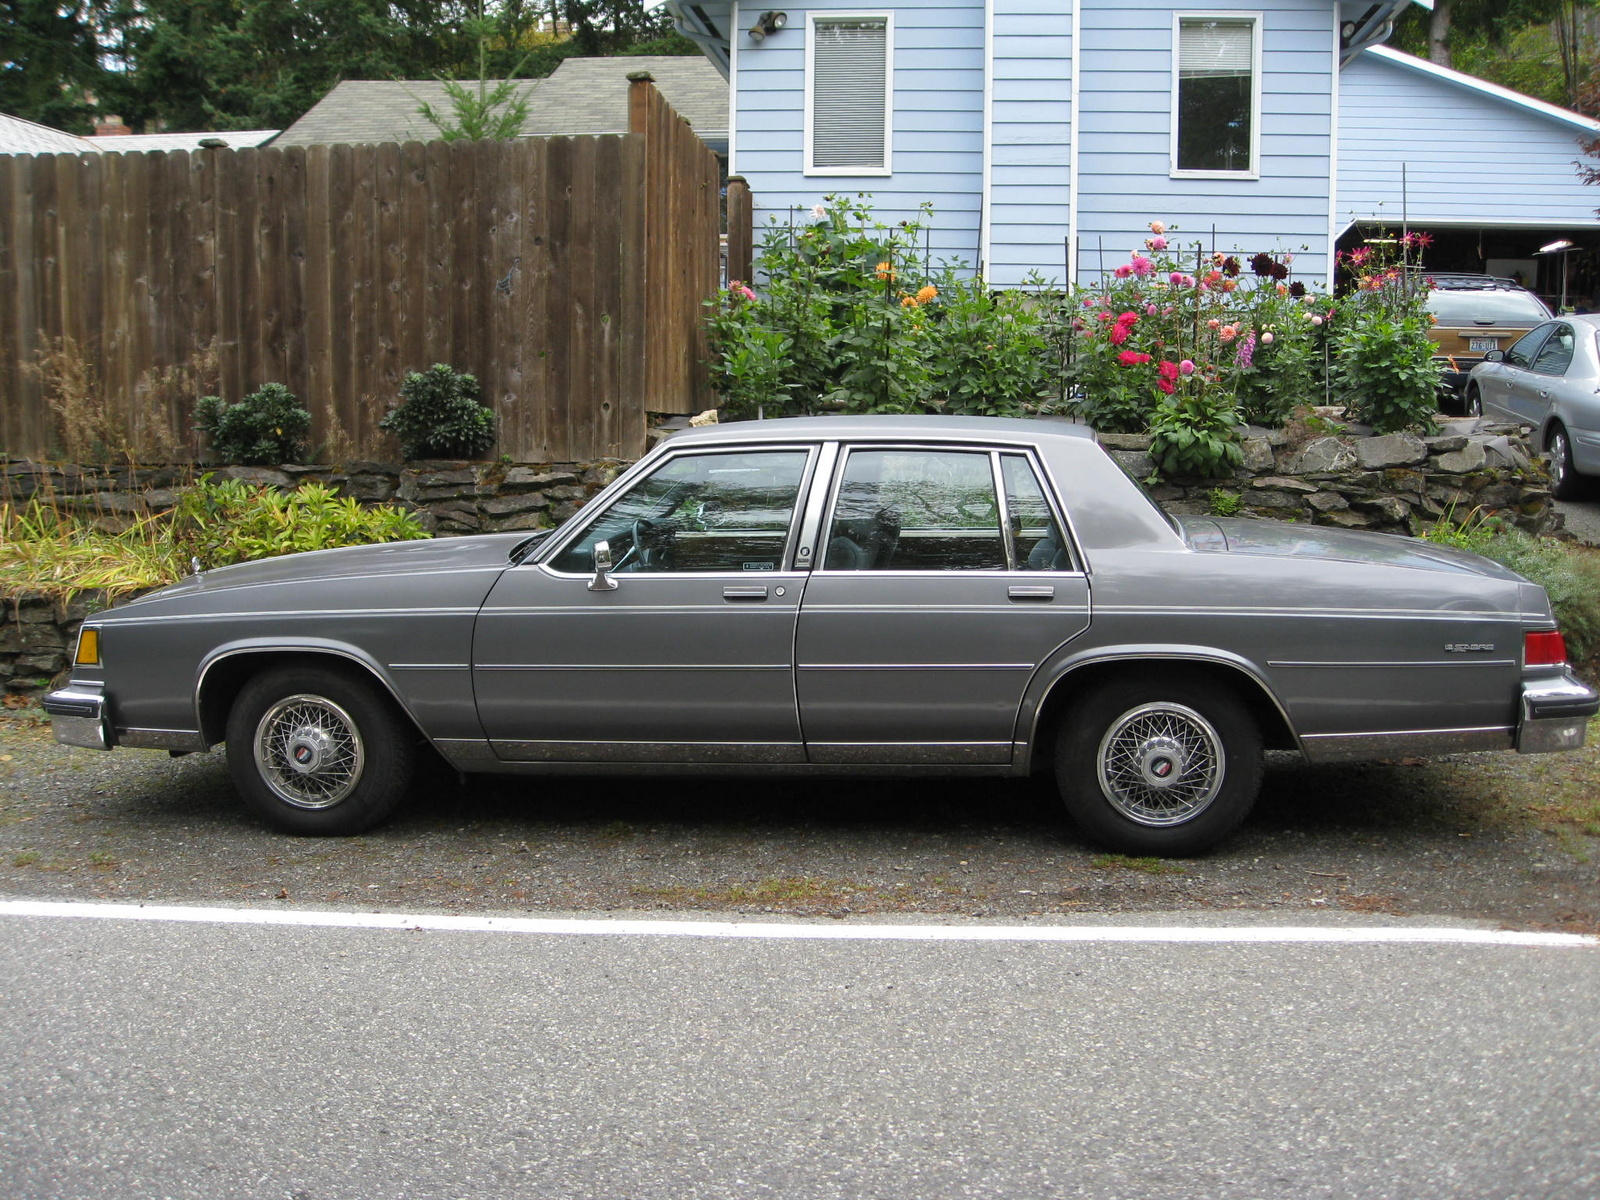 1995 Buick Lesabre Wiring Diagram Http Wwwjustanswercom Chevy